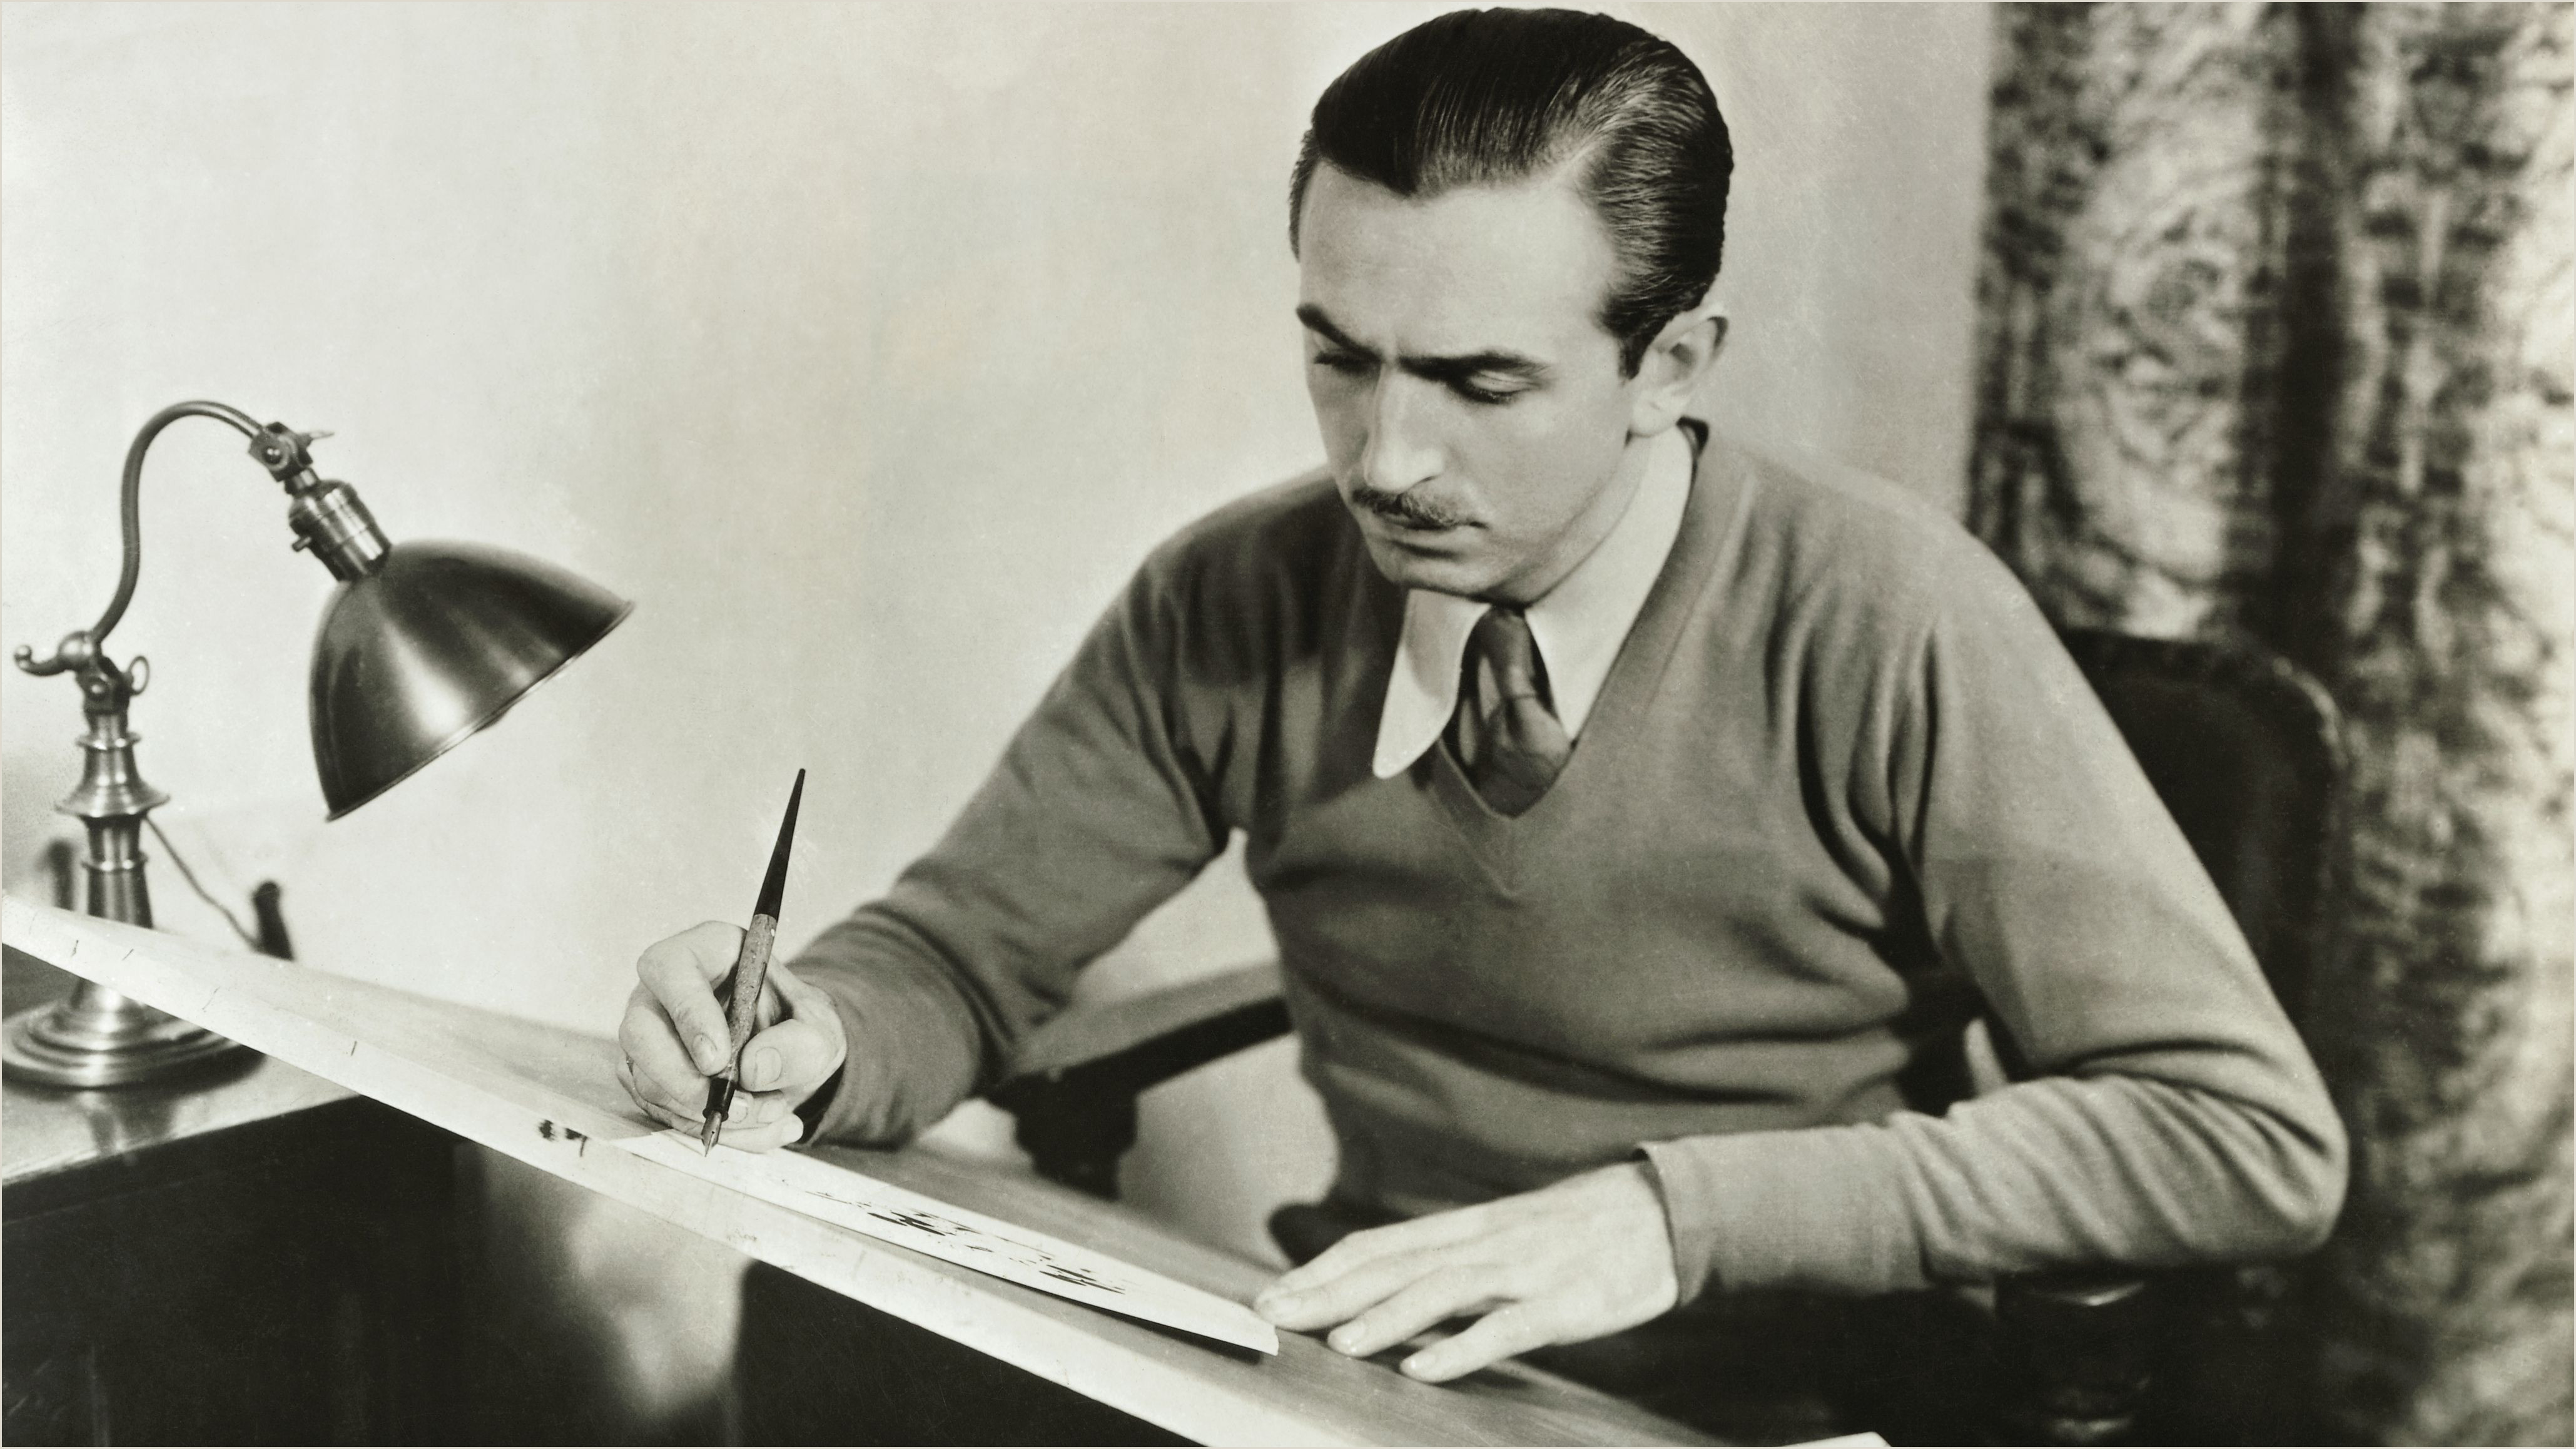 Biography of Walt Disney Animator and Producer